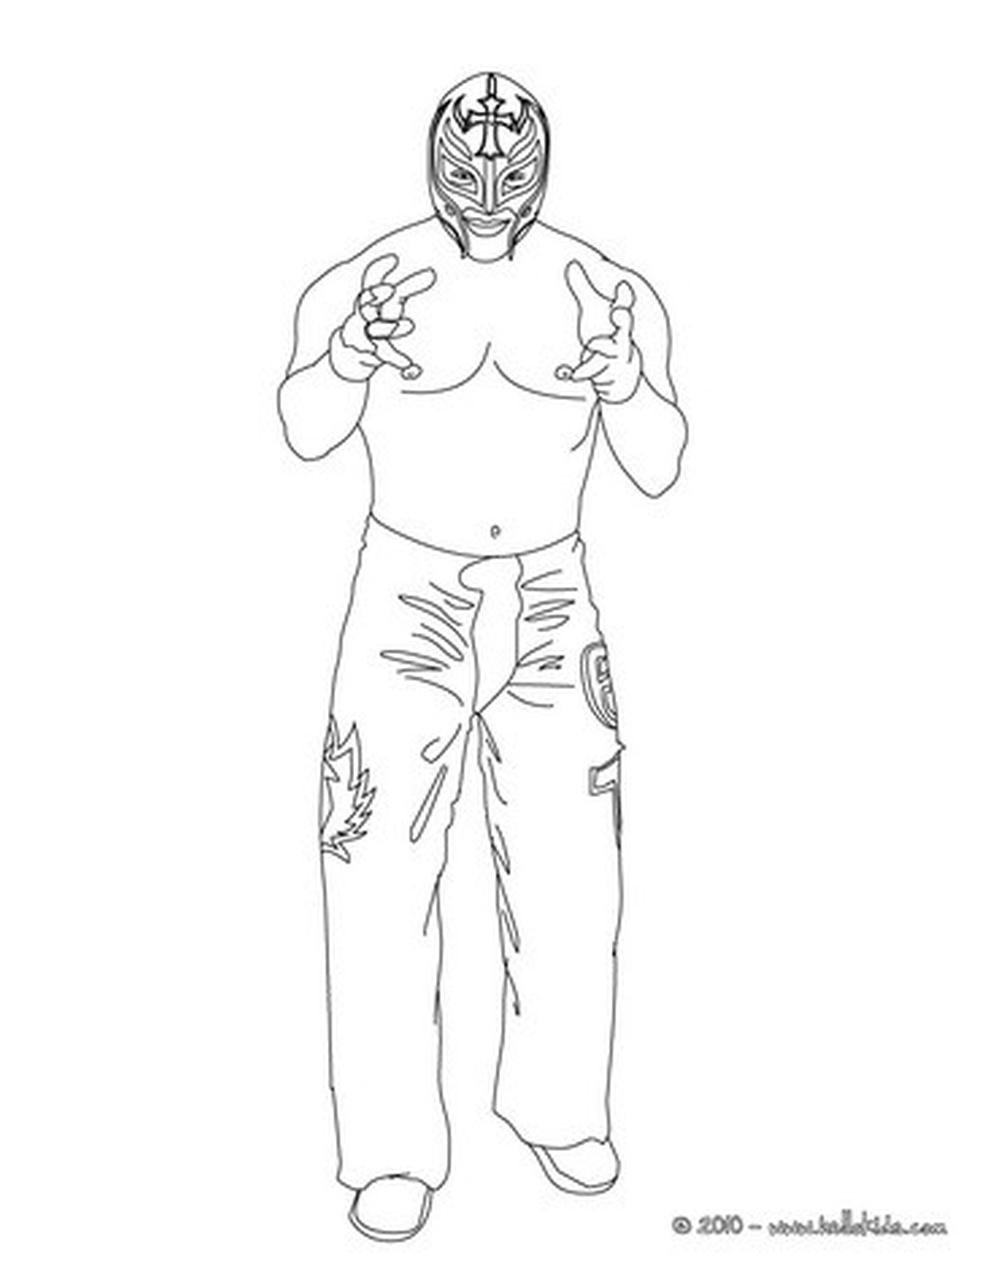 wwe rey mysterio coloring pages 42 best wwe coloring pages images on pinterest coloring coloring pages rey wwe mysterio